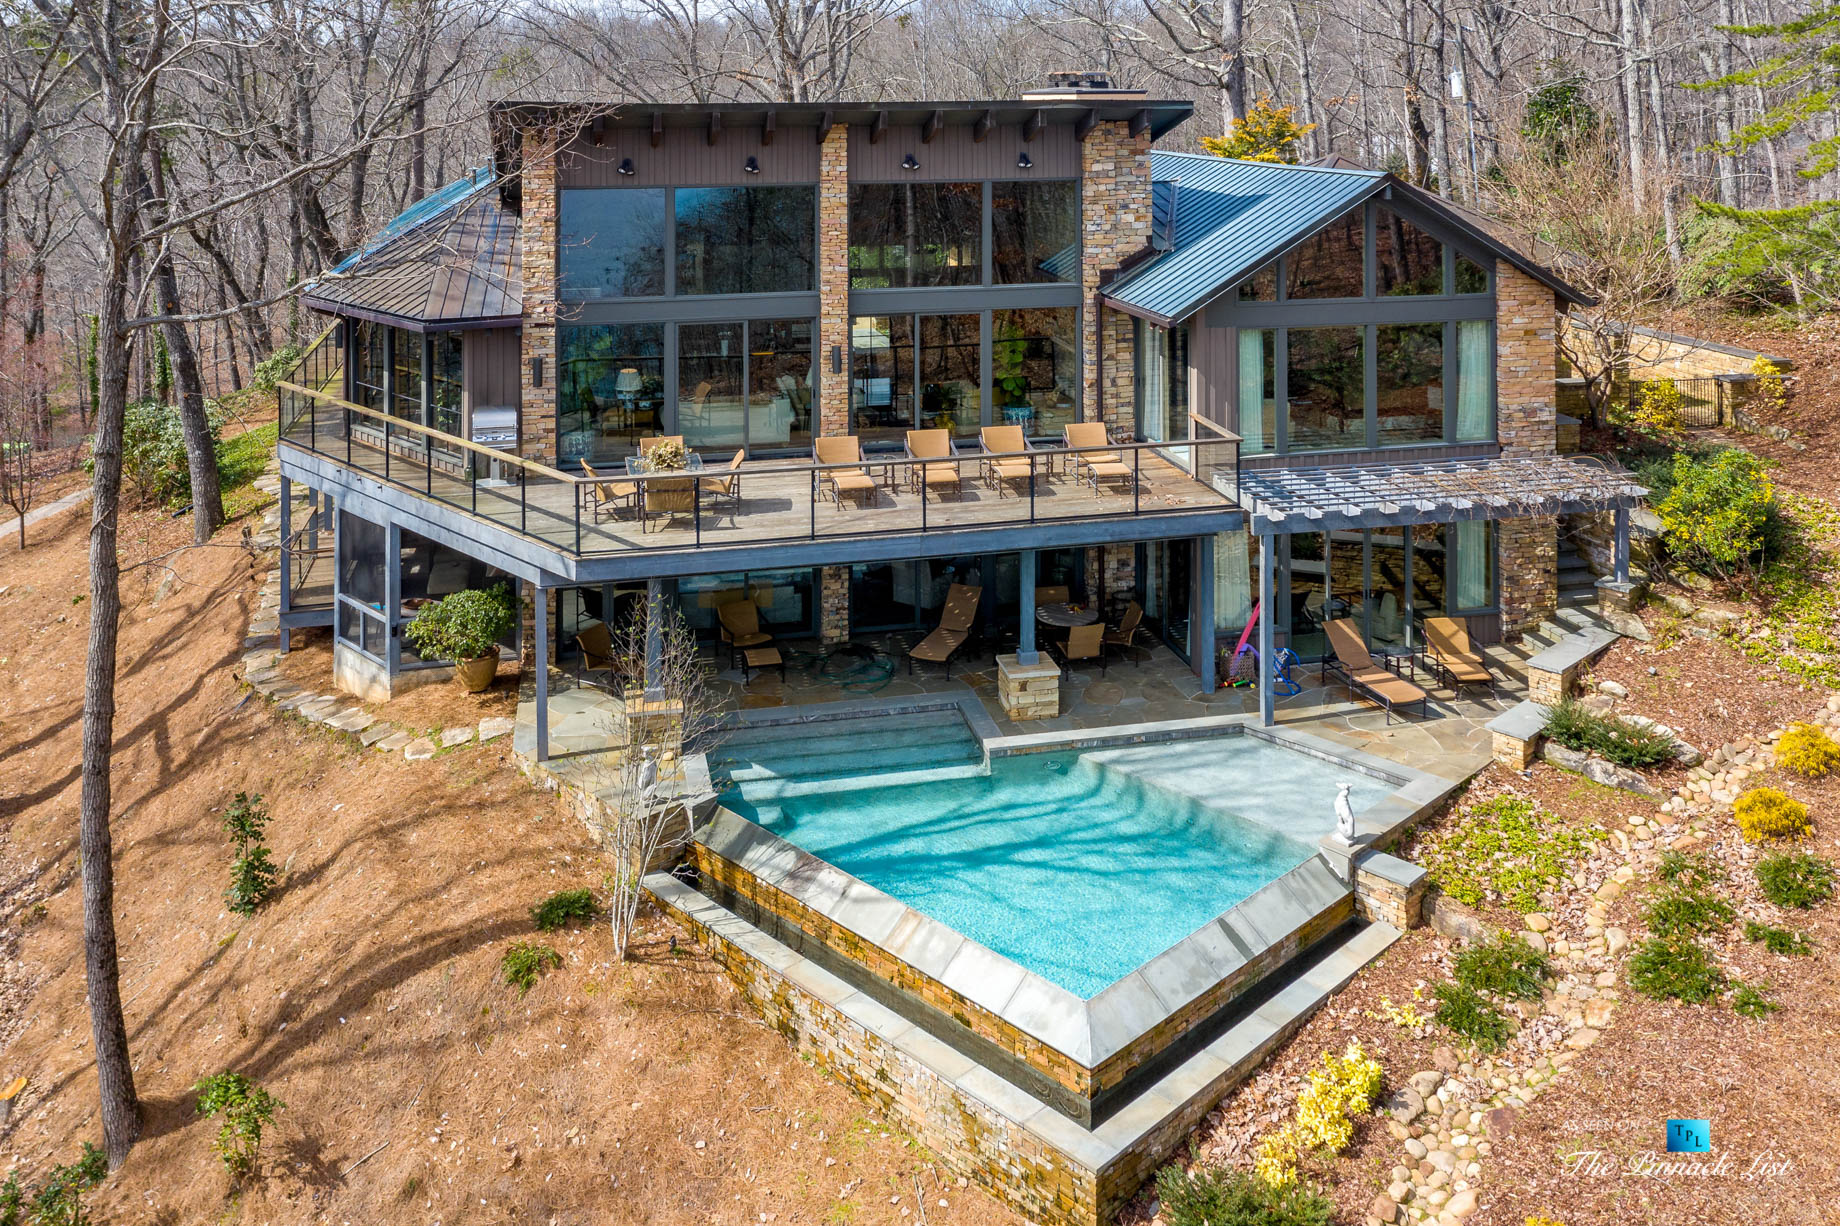 7860 Chestnut Hill Rd, Cumming, GA, USA – Drone Exterior Deck and Pool – Luxury Real Estate – Lake Lanier Mid-Century Modern Stone Home